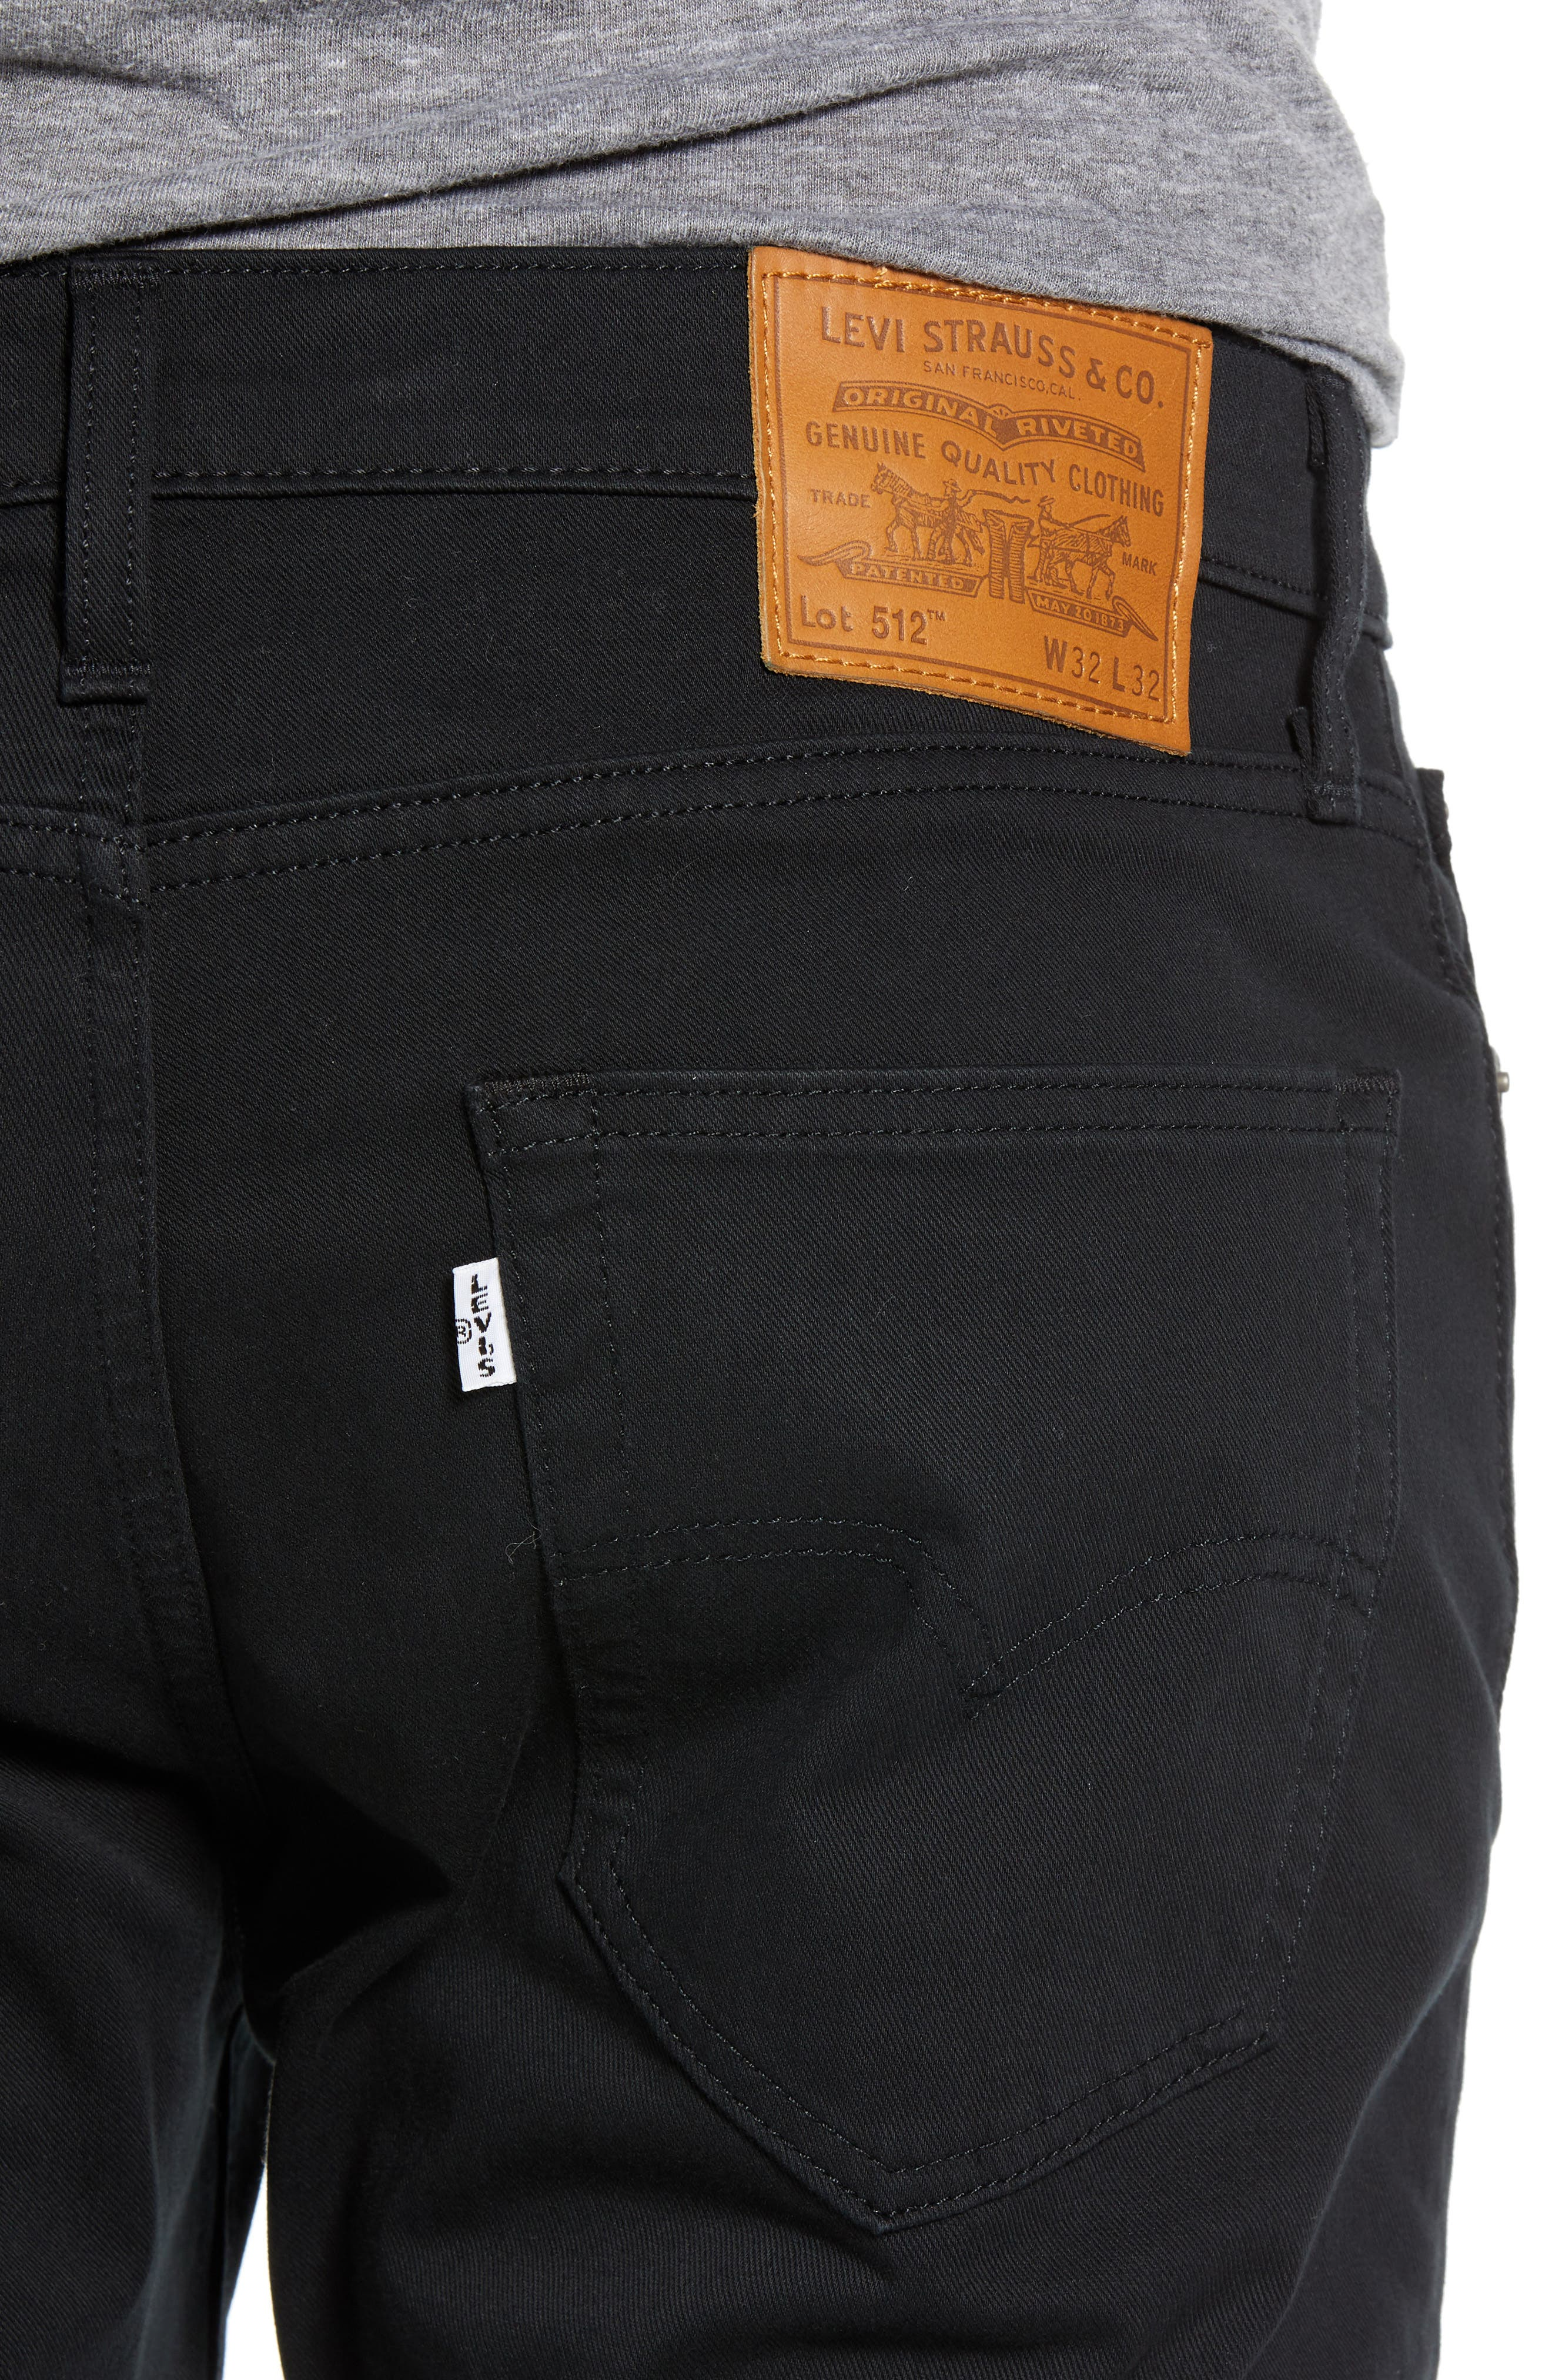 512<sup>™</sup> Slouchy Skinny Fit Twill Pants,                             Alternate thumbnail 4, color,                             BLACK WONDER KNIT TWILL